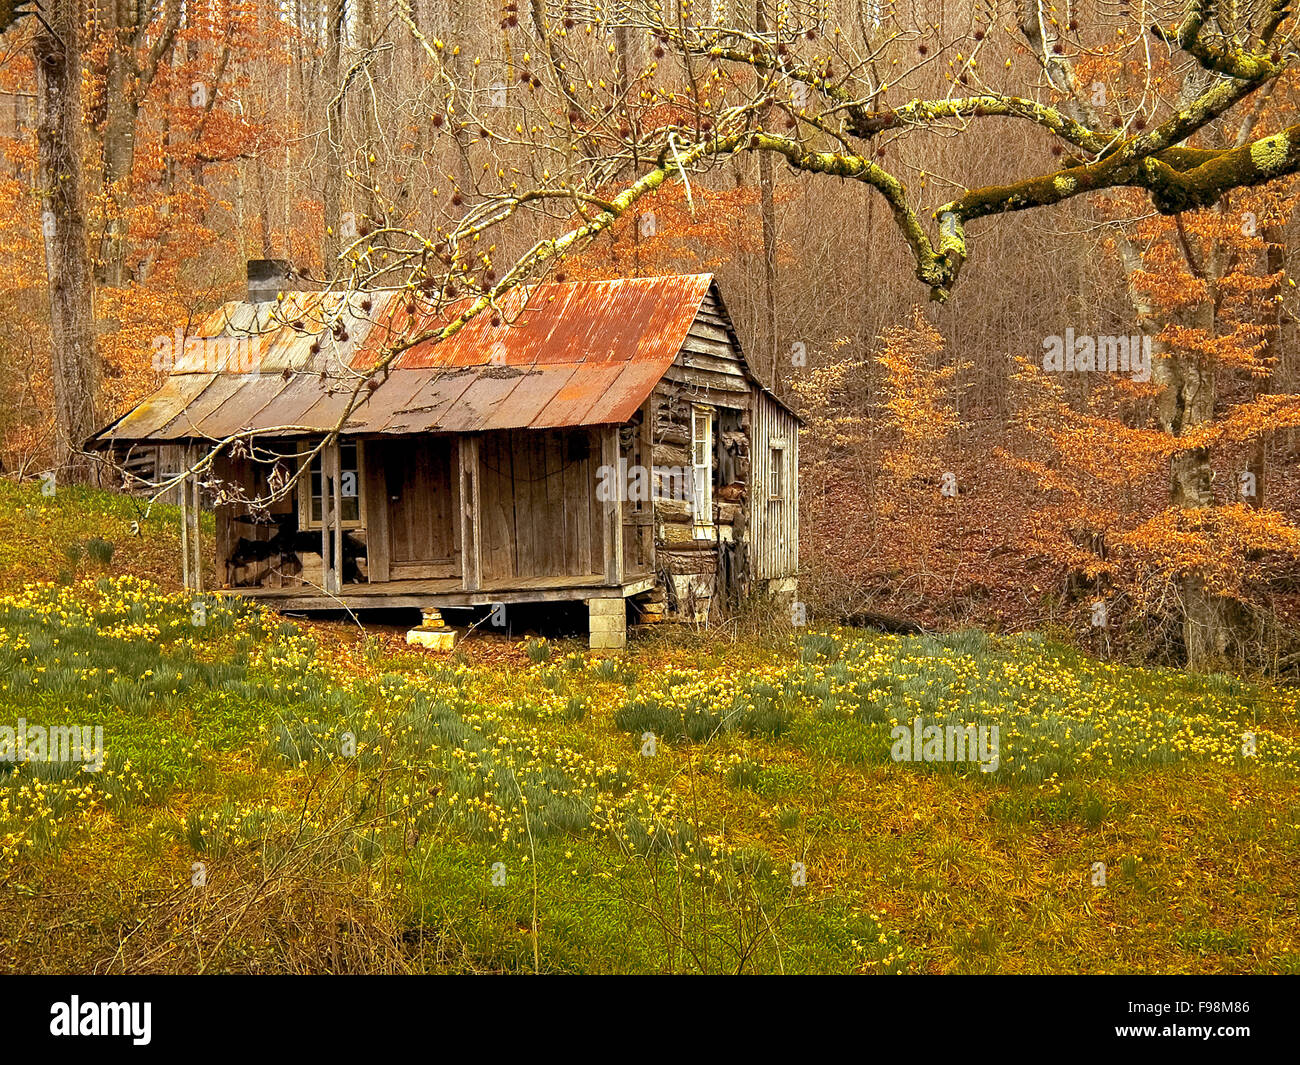 Spring jonquils bloom and flower outside an abandoned log cabin in a wood hollow in the Blue Ridge Mountains of - Stock Image